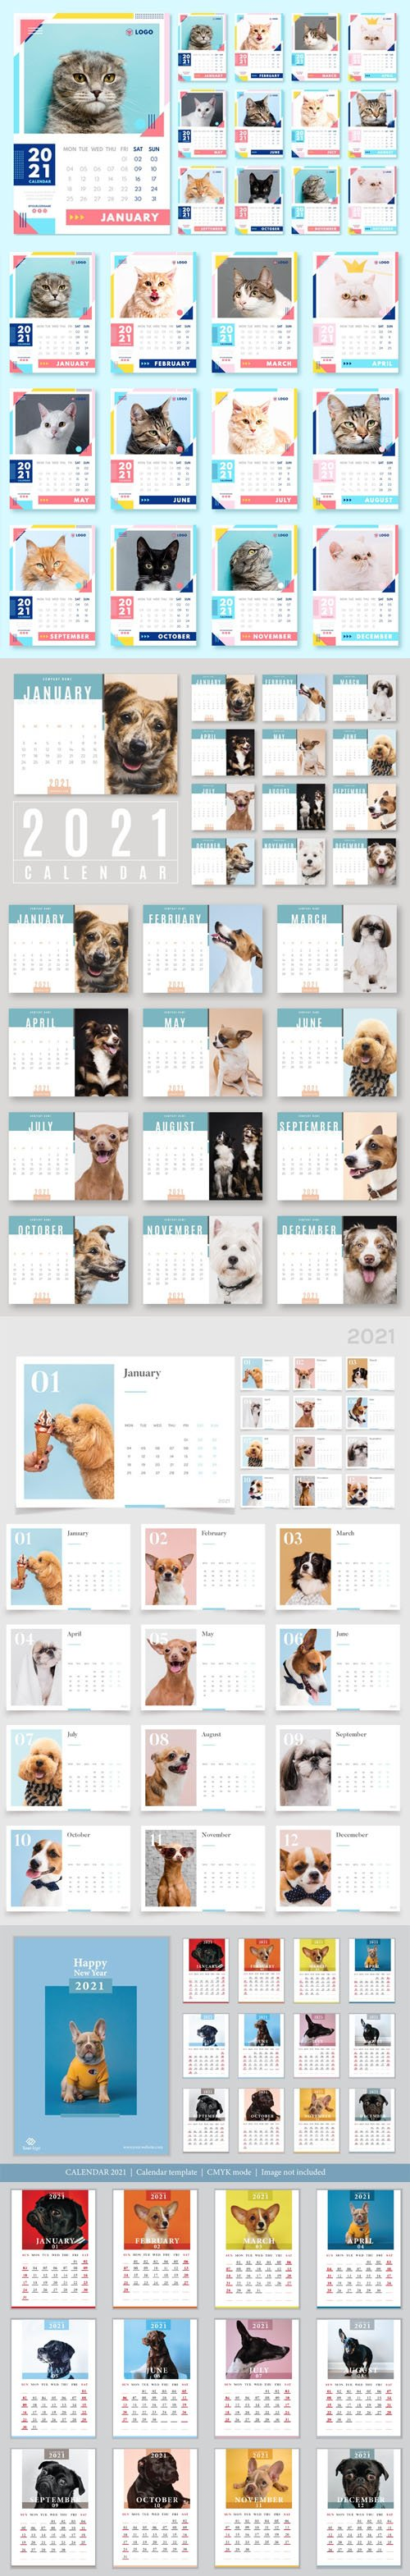 2021 Calendars Vector Templates with Cute Animals